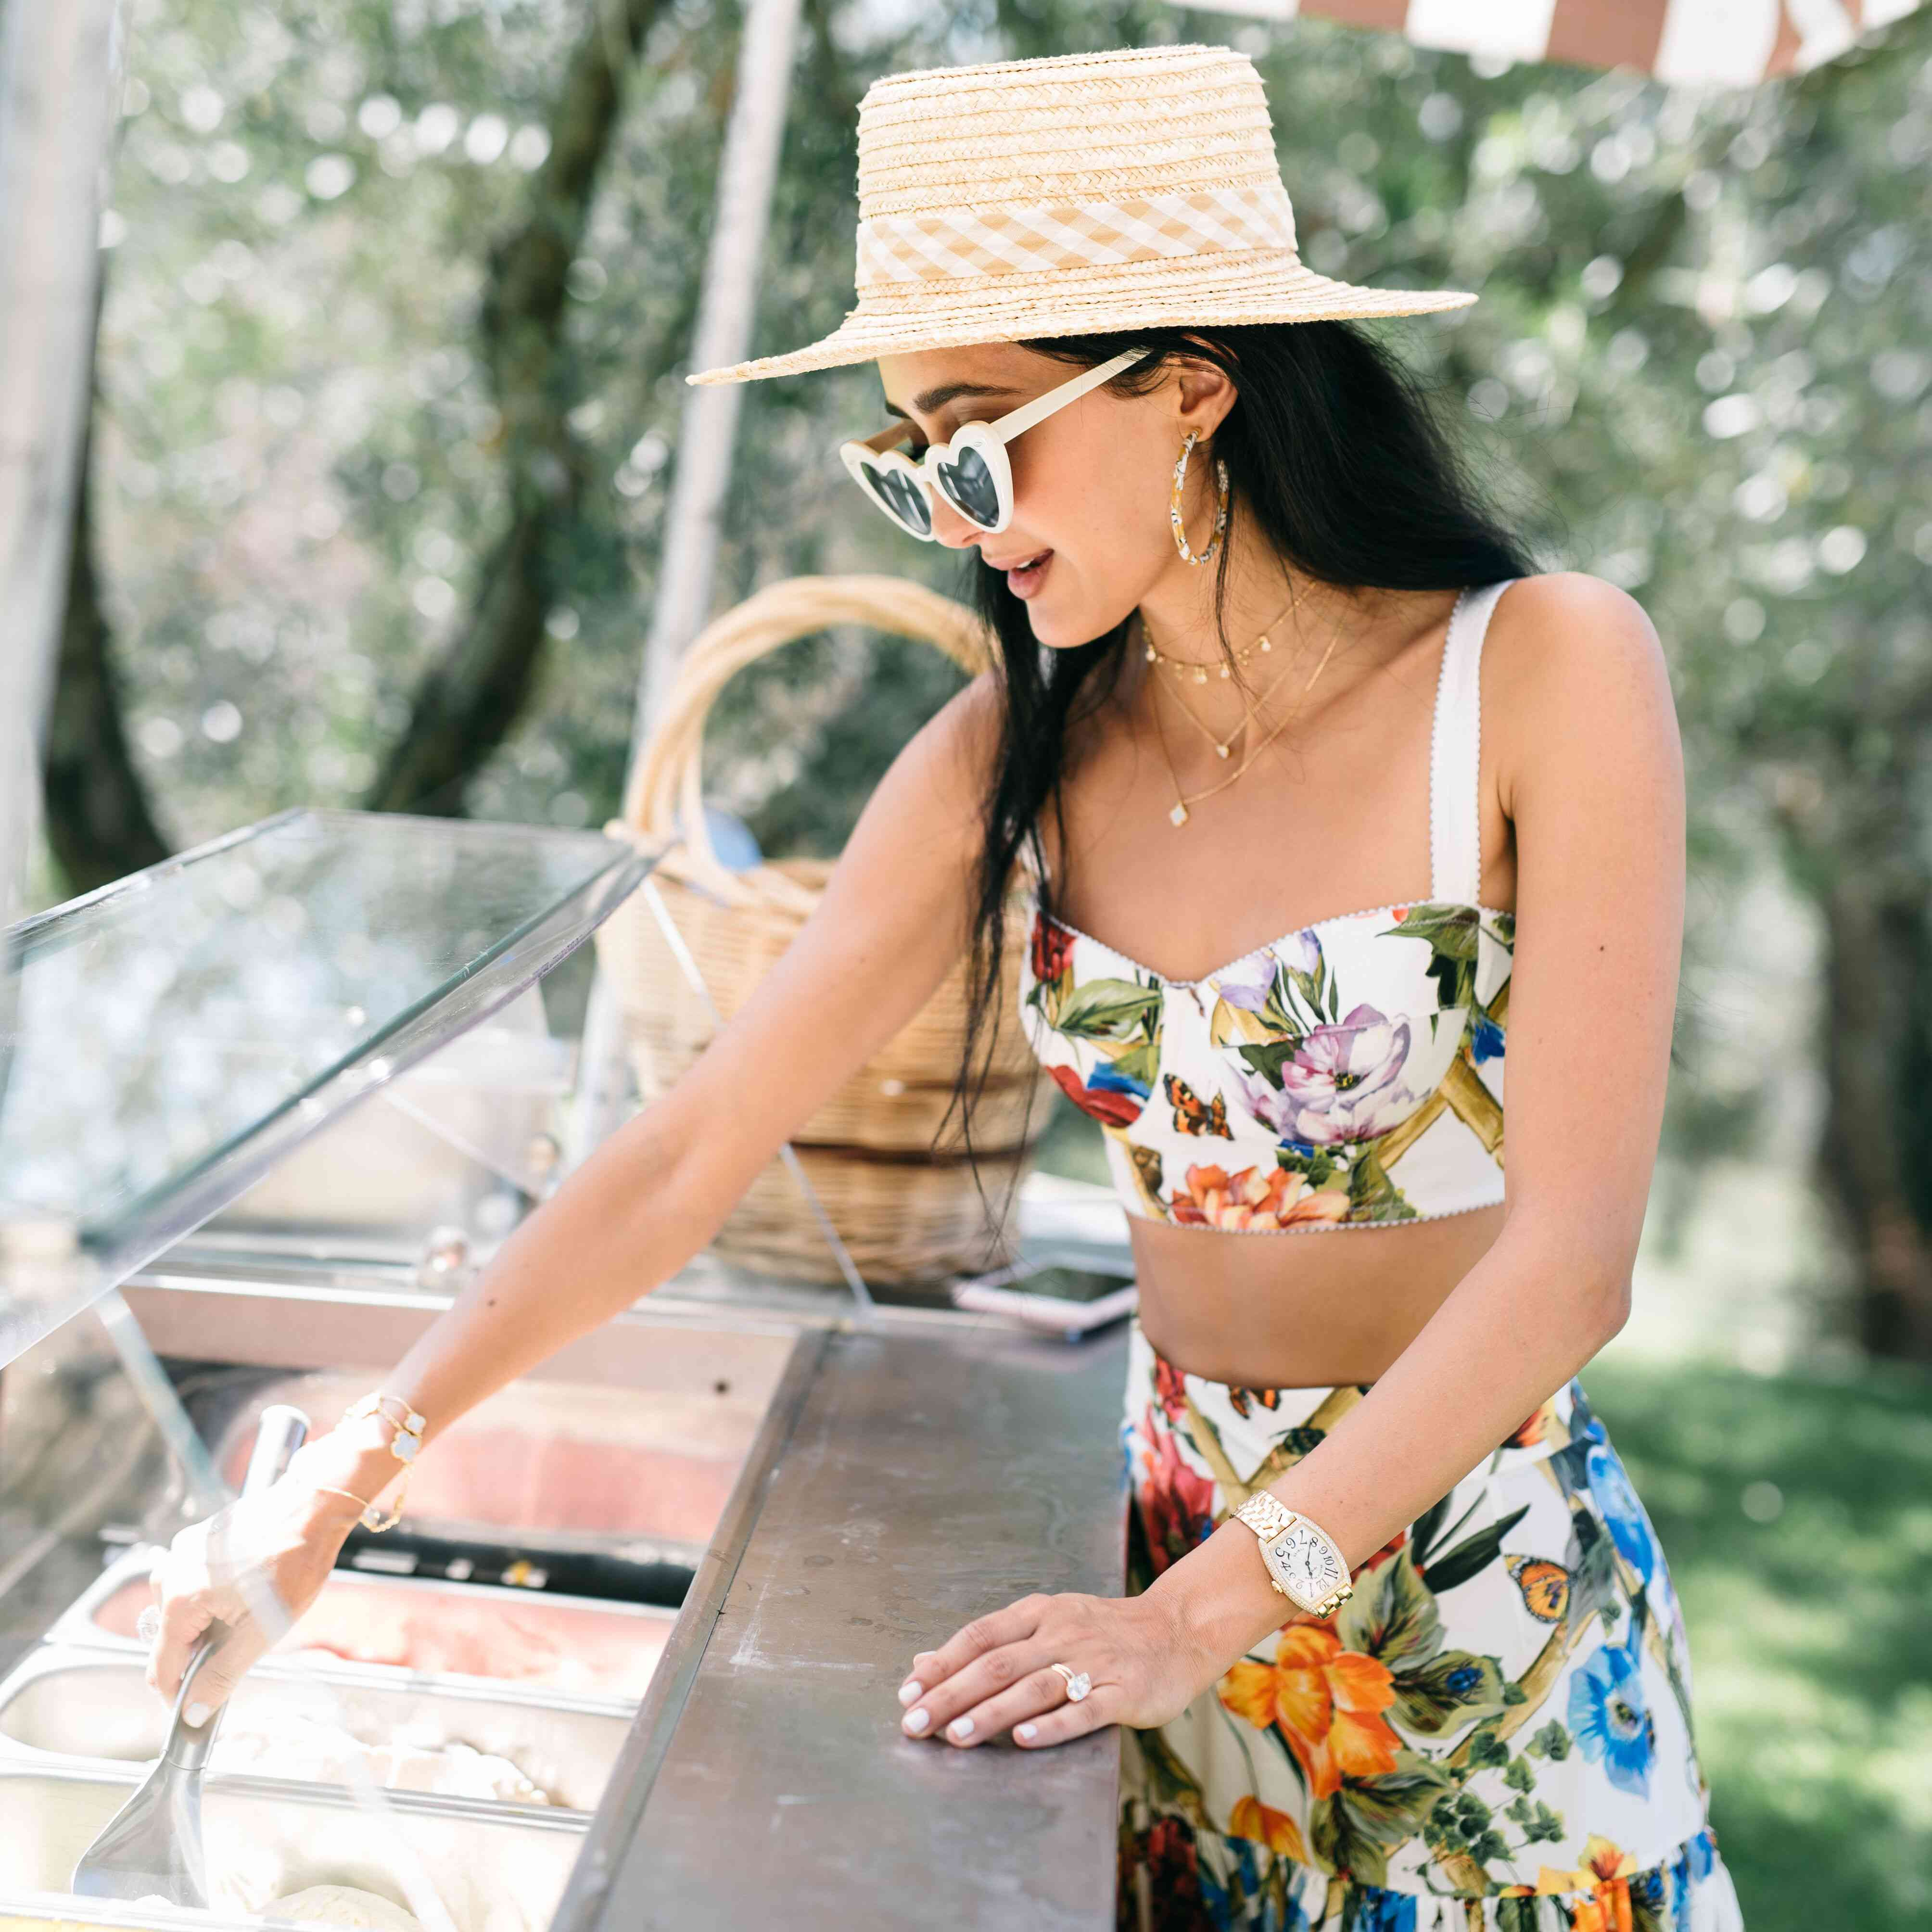 A woman scooping ice cream